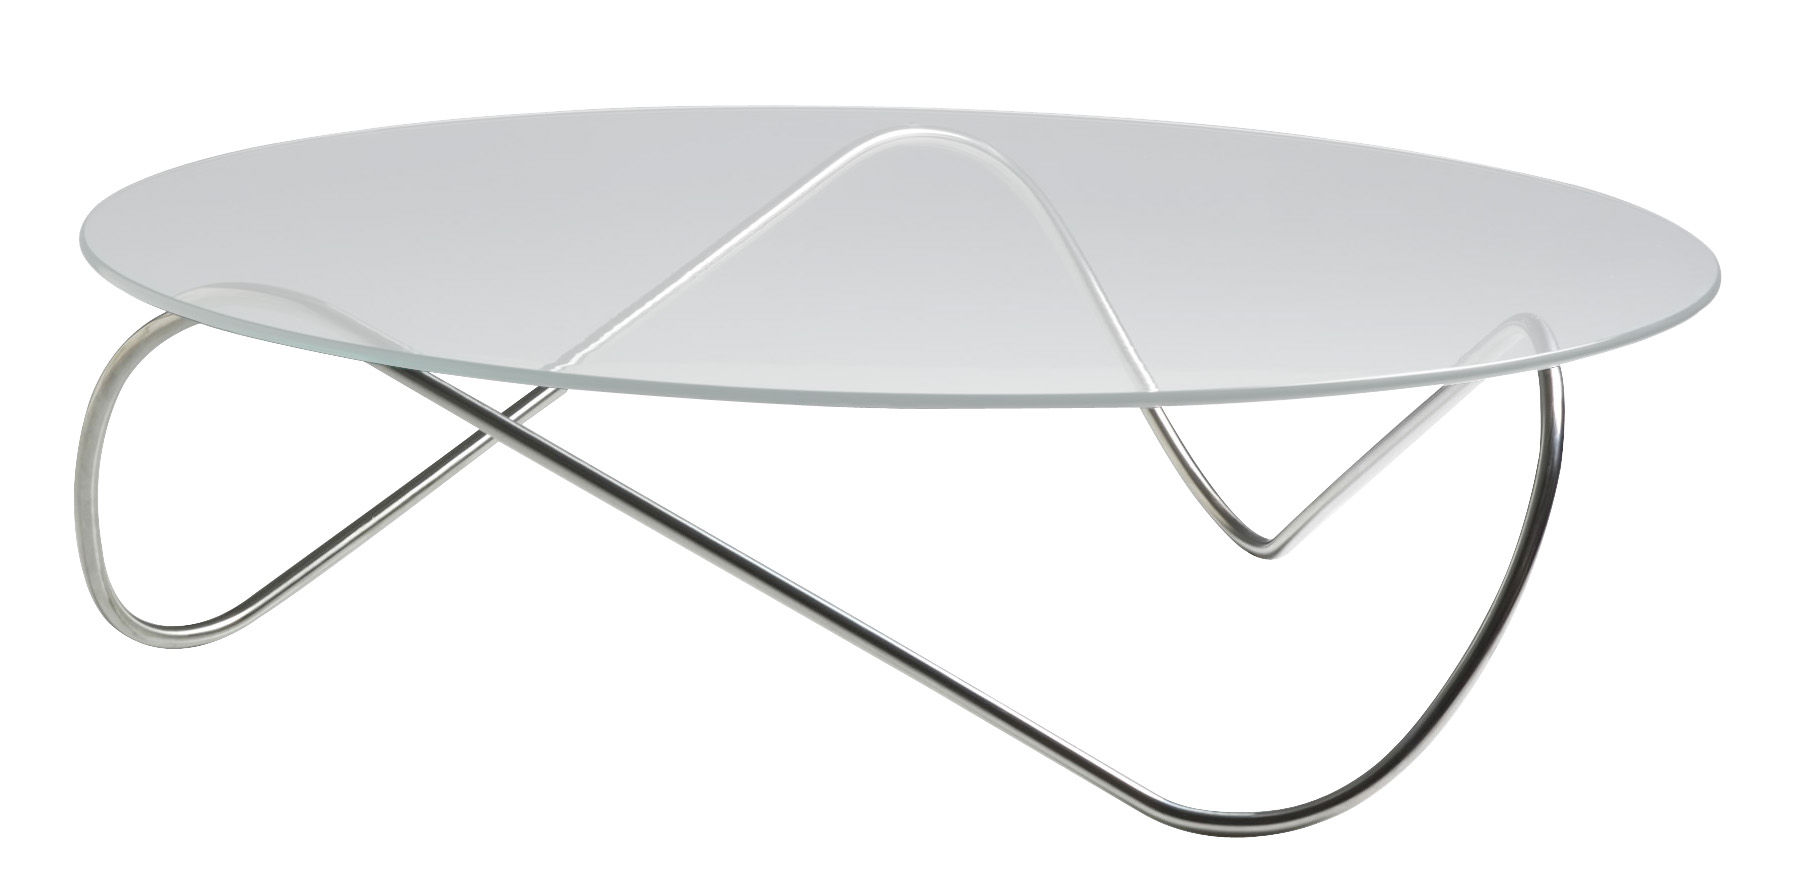 kaeko coffee table stainless steel structure by objekto. Black Bedroom Furniture Sets. Home Design Ideas